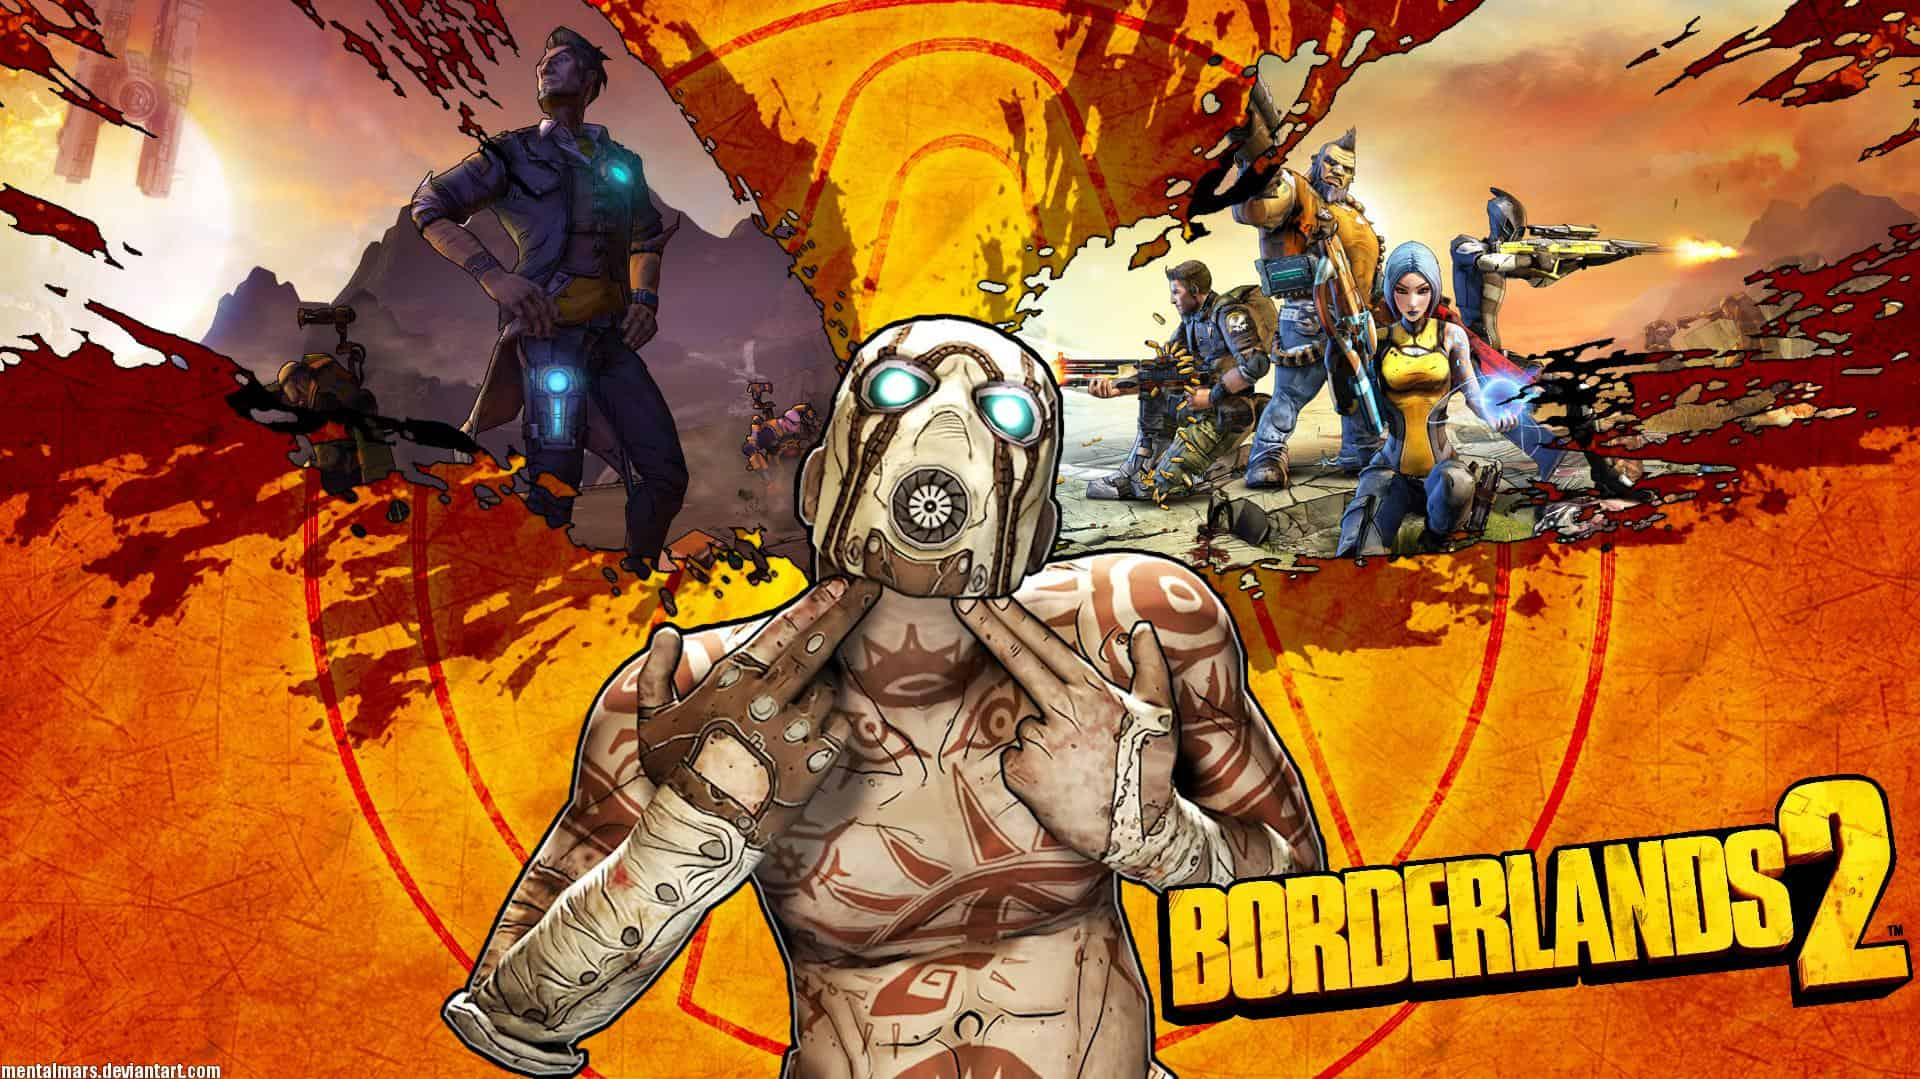 How To Fix Lag In Borderlands 2 - Kill Ping